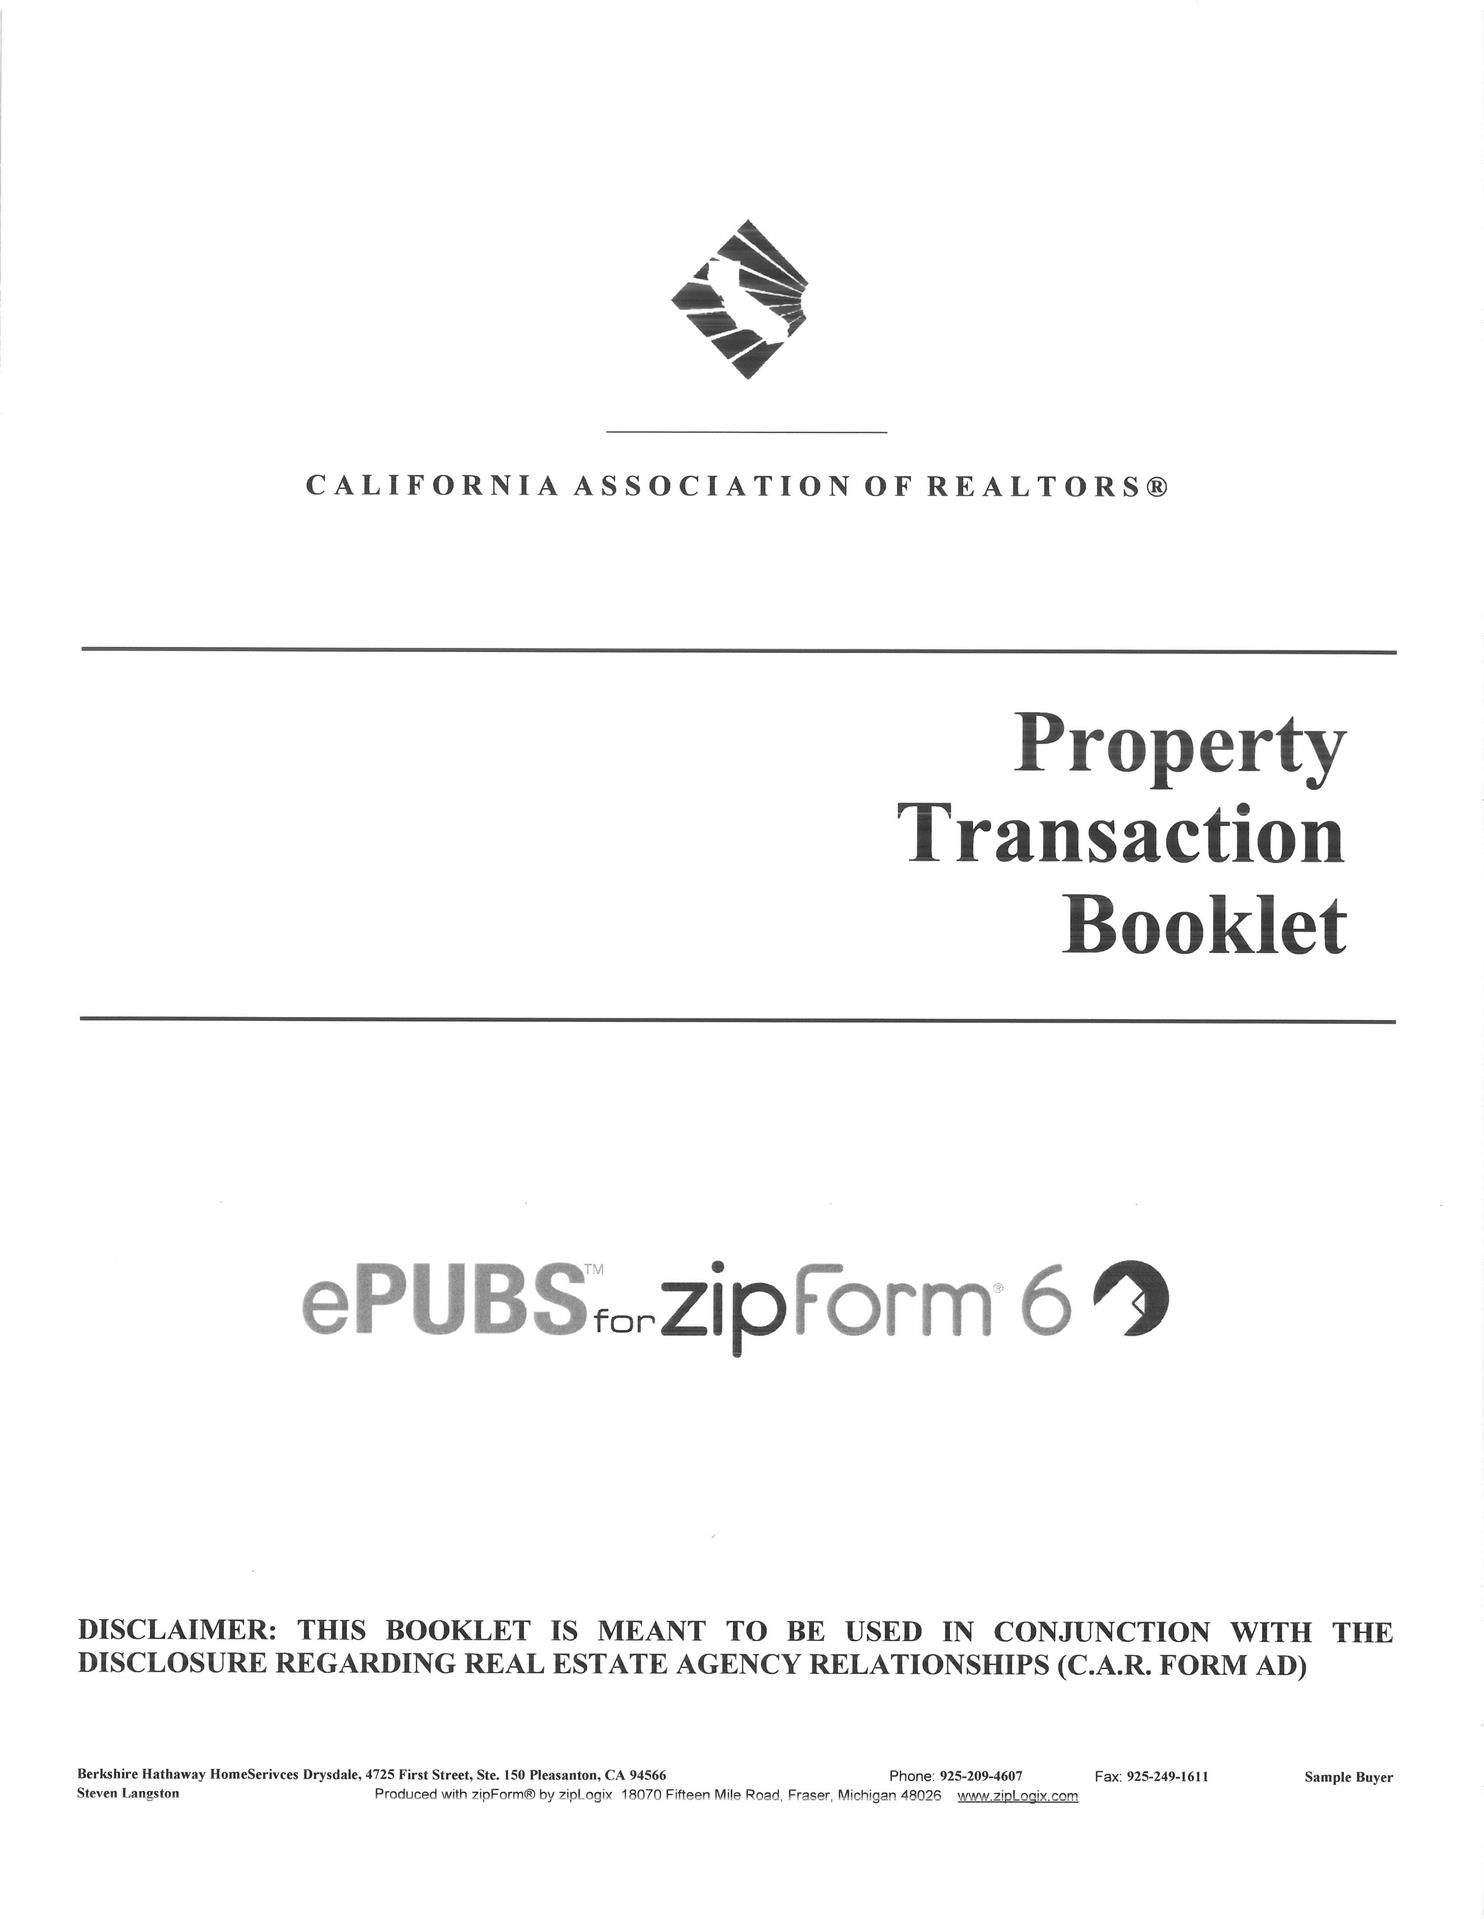 Guide to Property Transaction Booklet